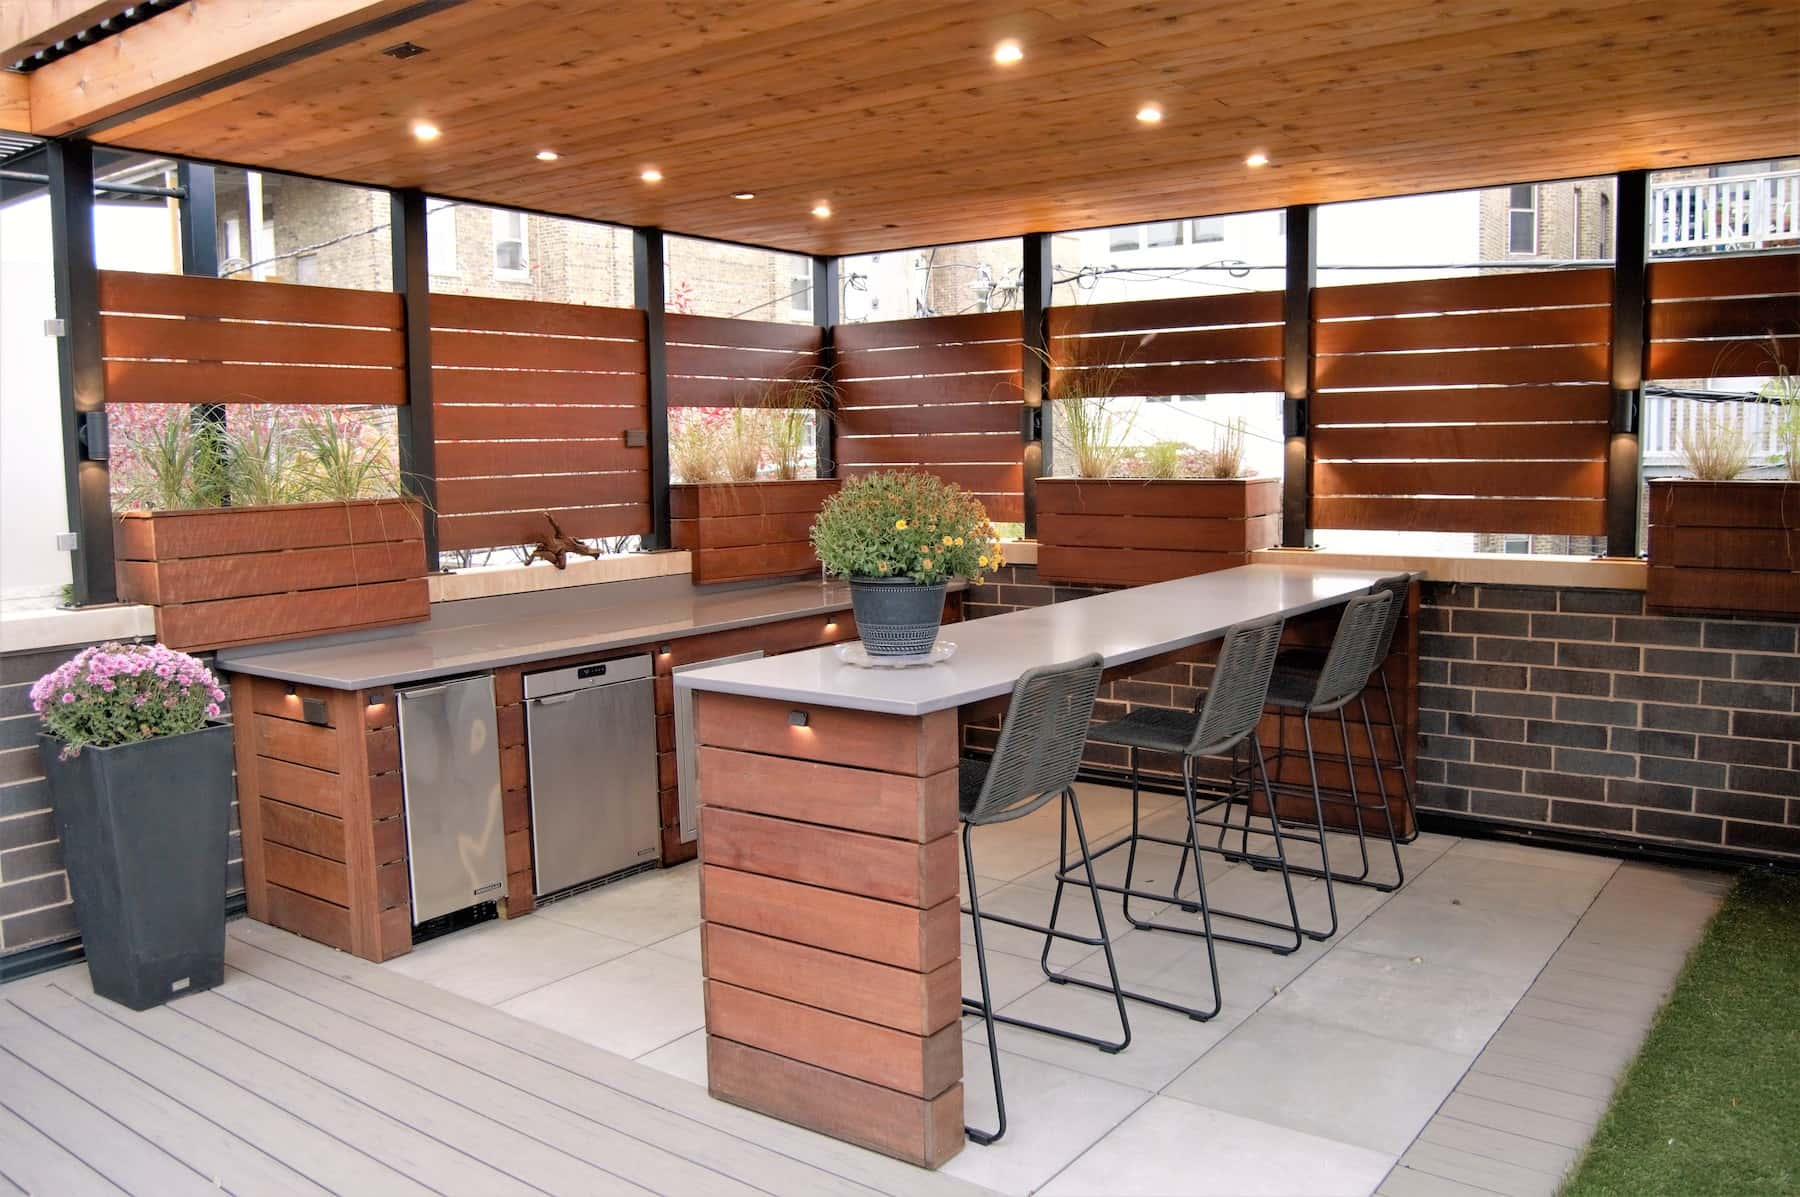 Rooftop & Patio Outdoor Space With Outdoor Kitchen - Lake ... on Outdoor Kitchen Patio  id=84996